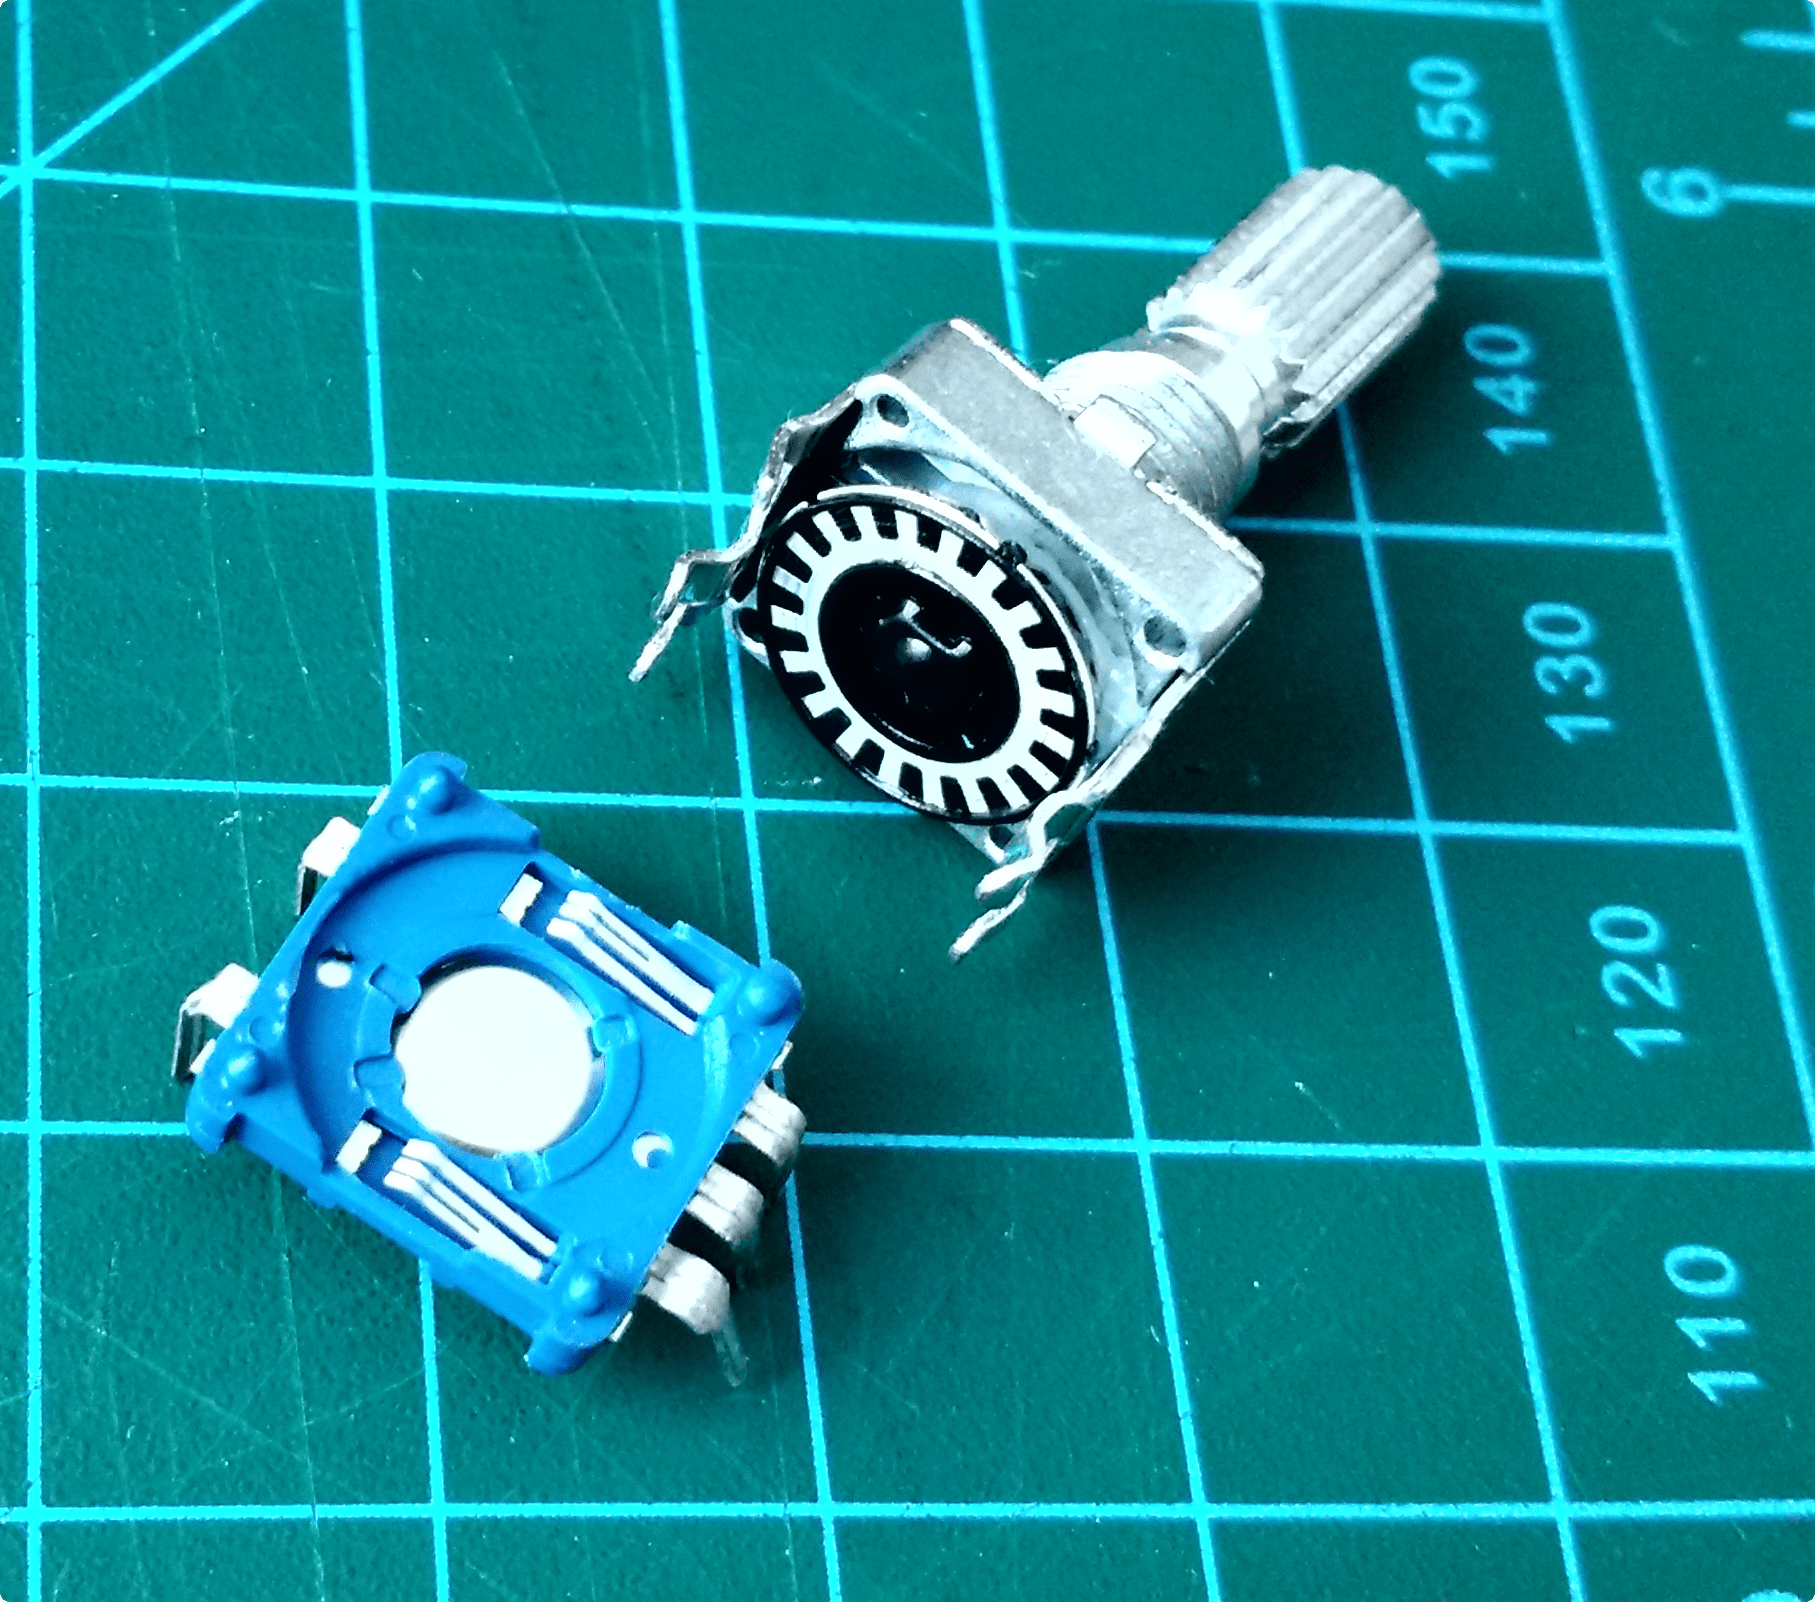 Disassembled rotary encoder